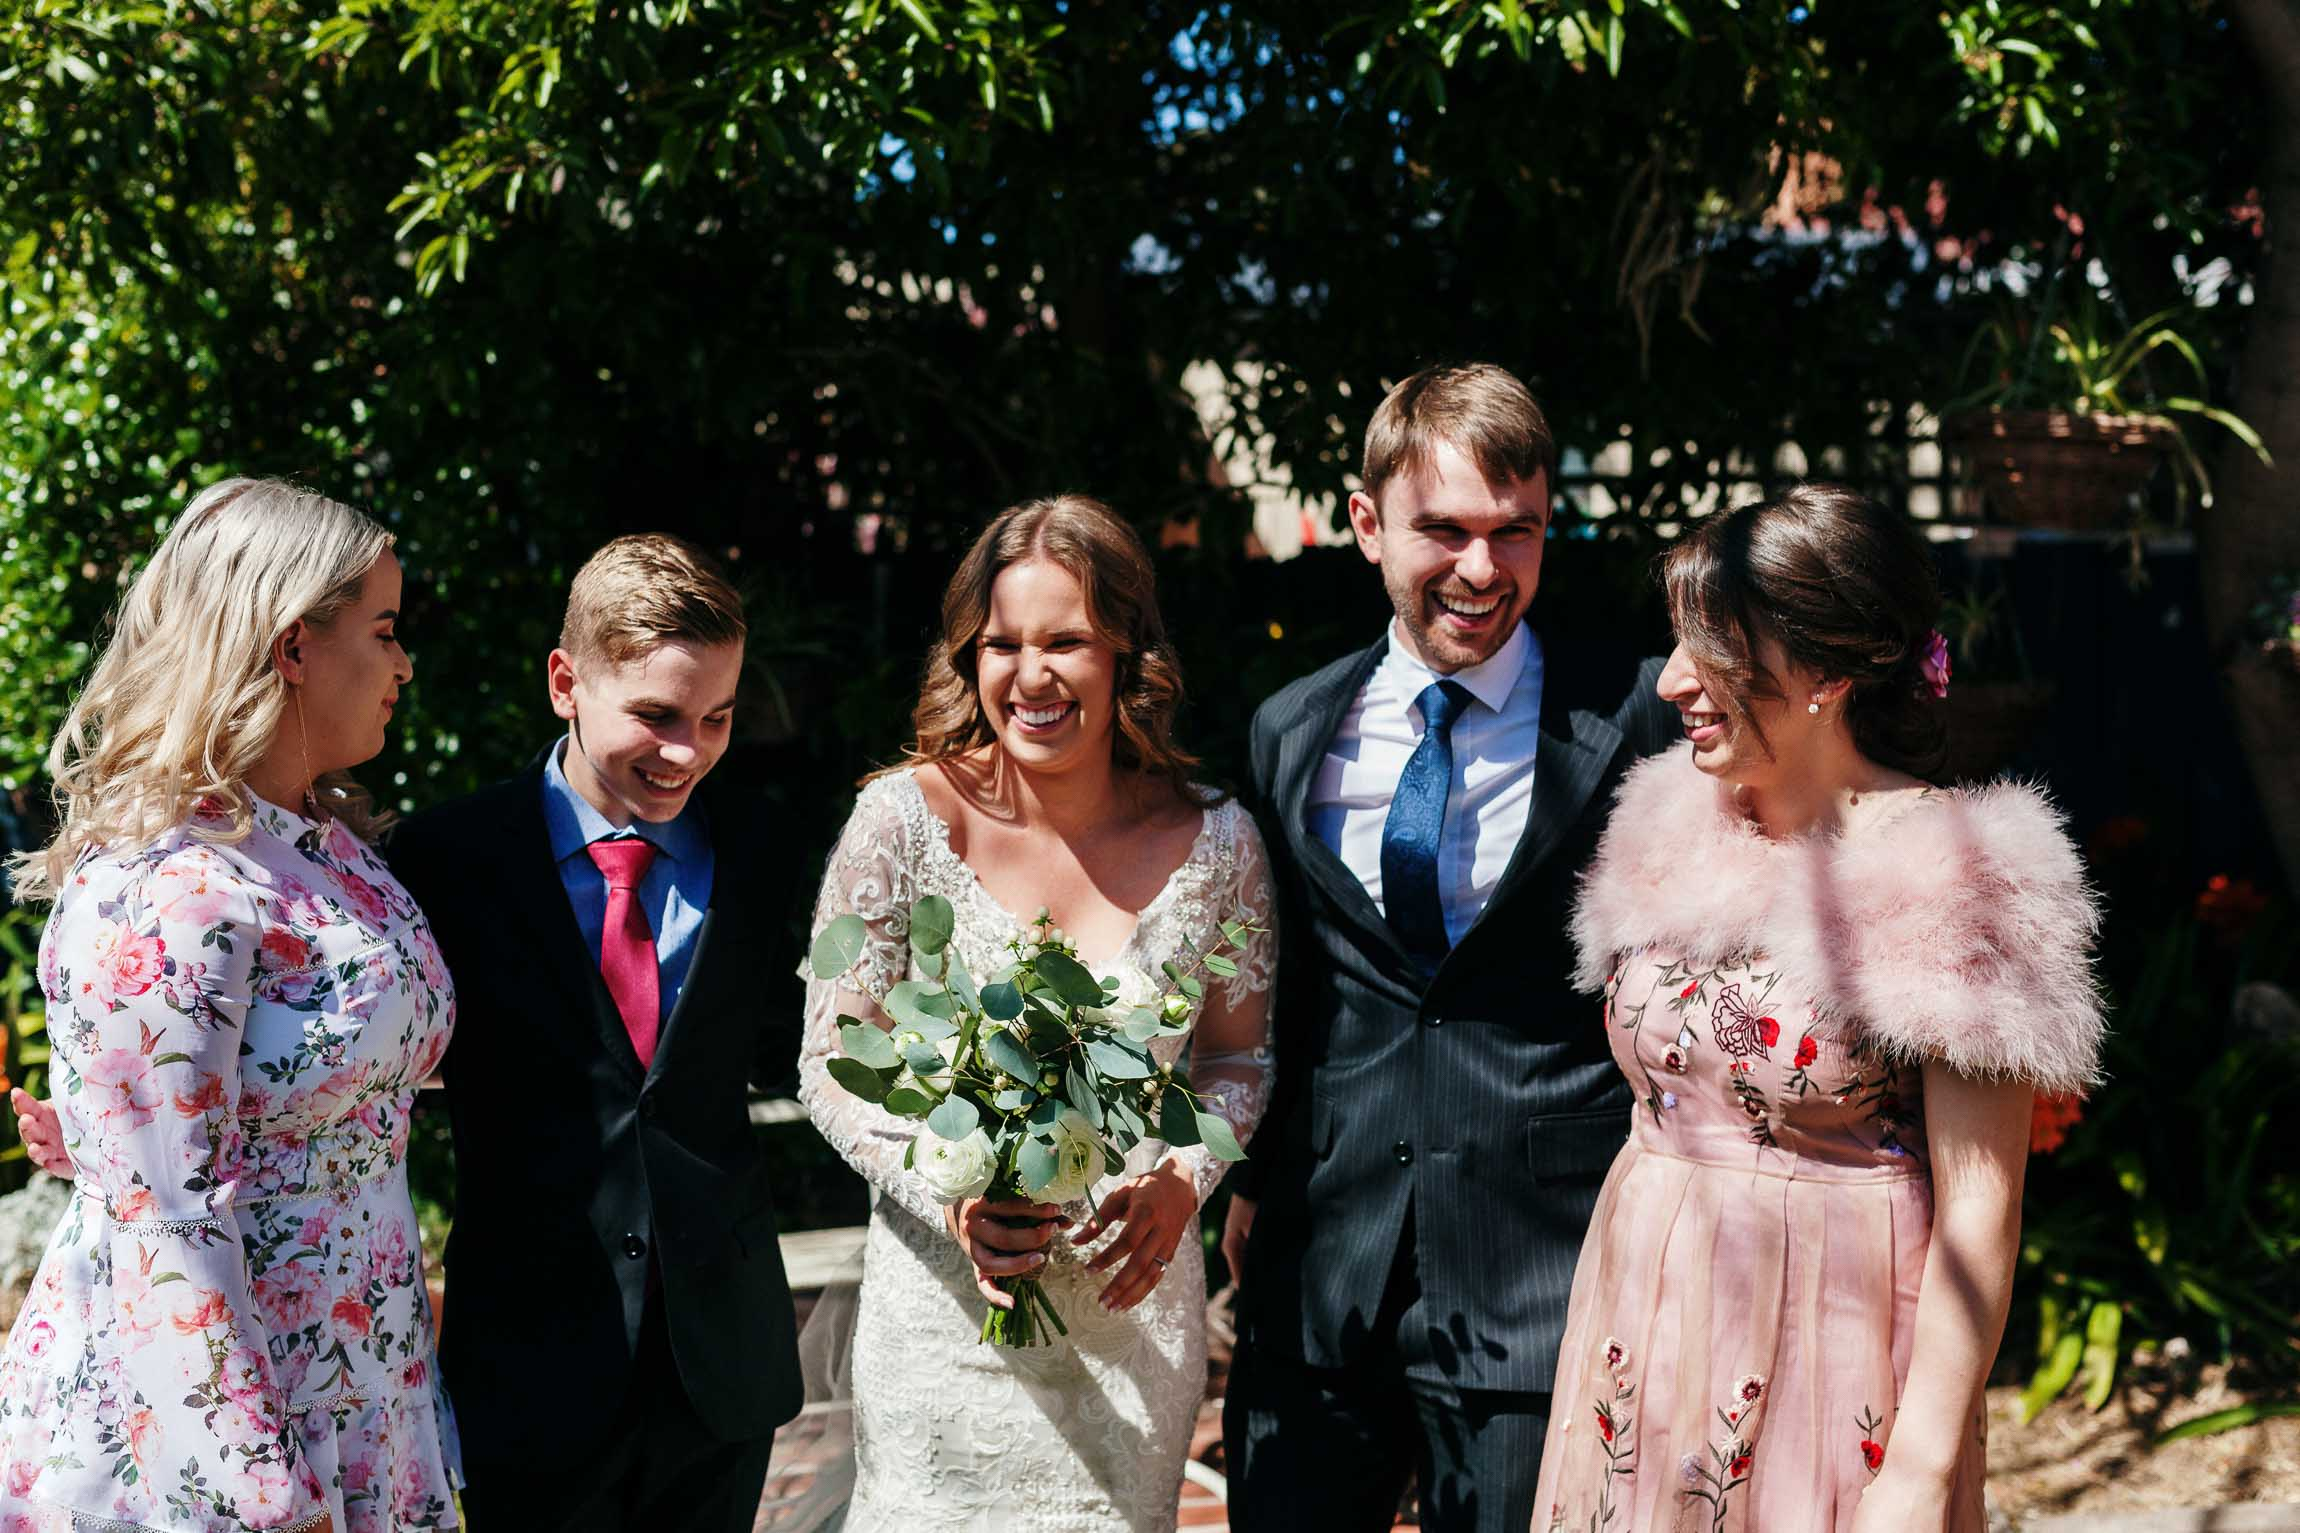 lachlan-scallion-melbourne-victoria-austrlia-mornington-peninsula-candid-relaxed-natural-chilled-wedding-photographyglasshaus-richmond-131.jpg